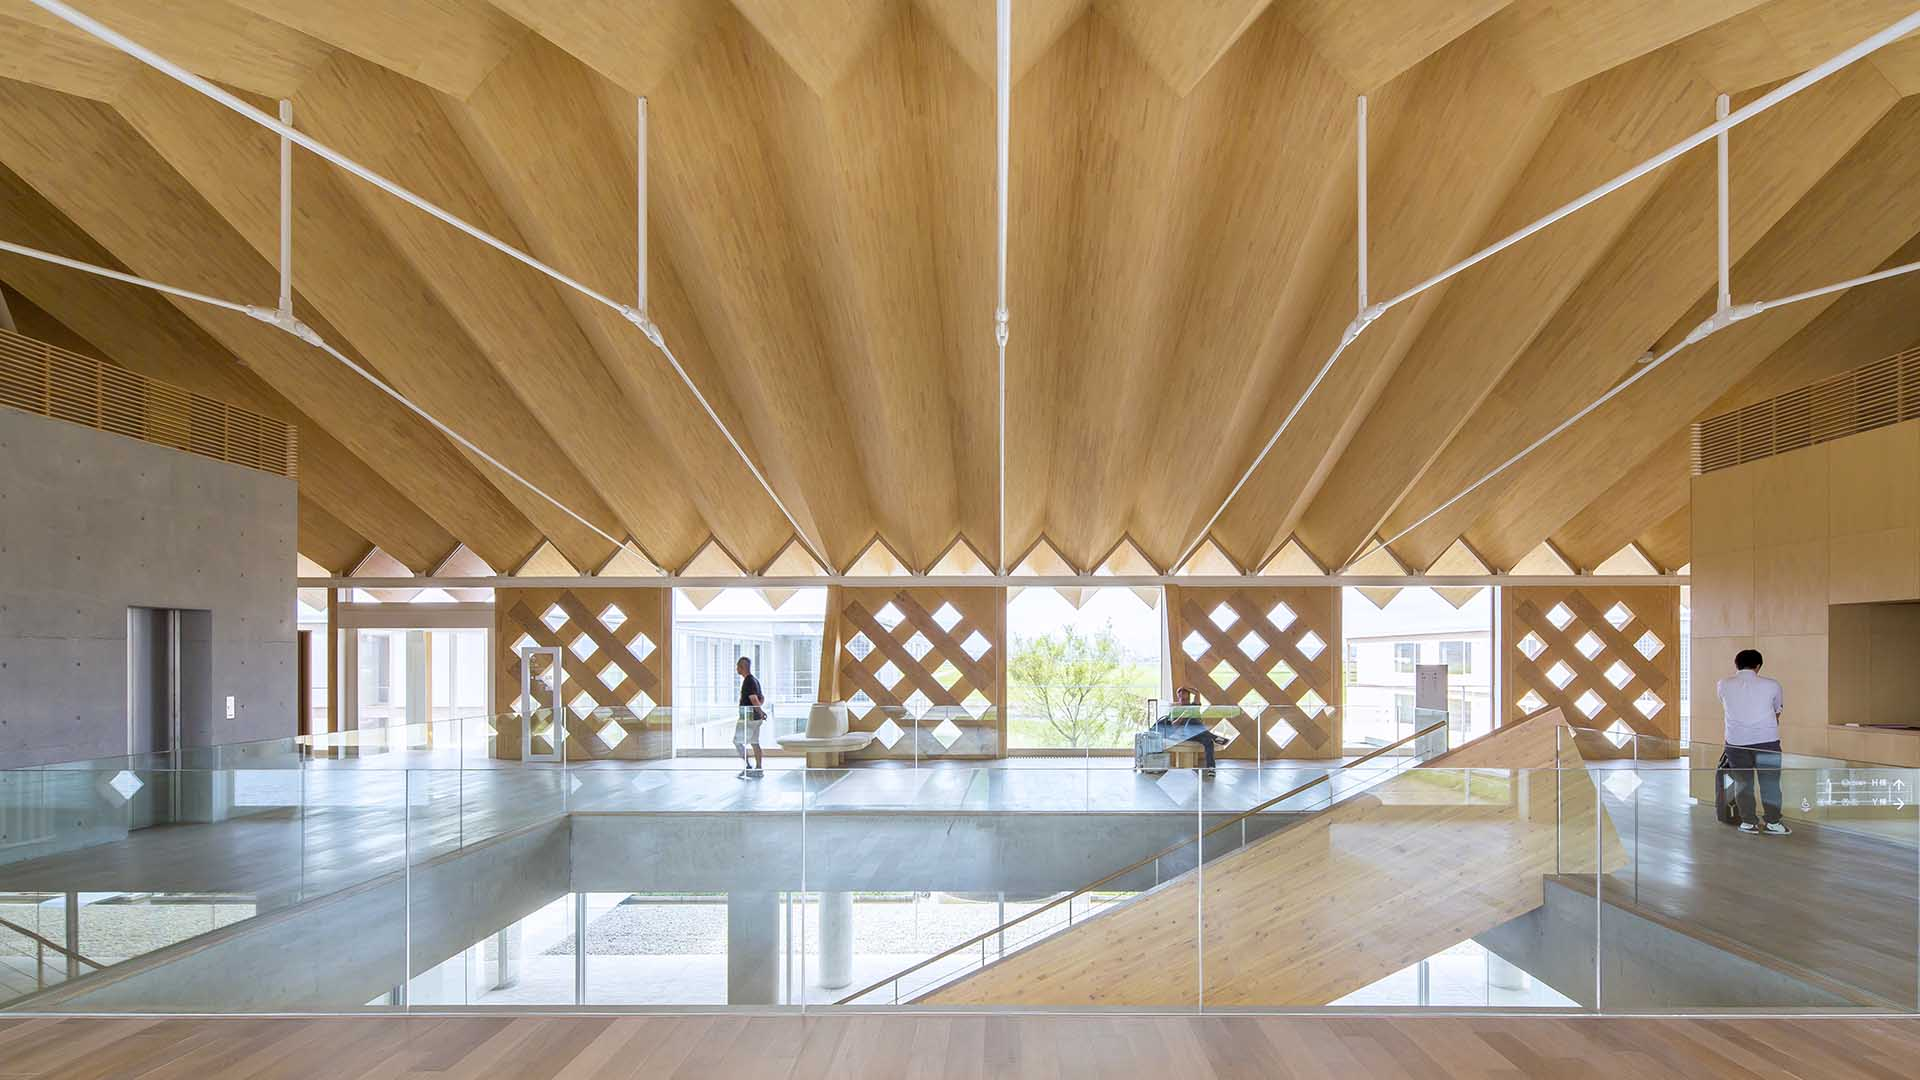 Shigeru Ban comments some of his ideas related to temporary buildings